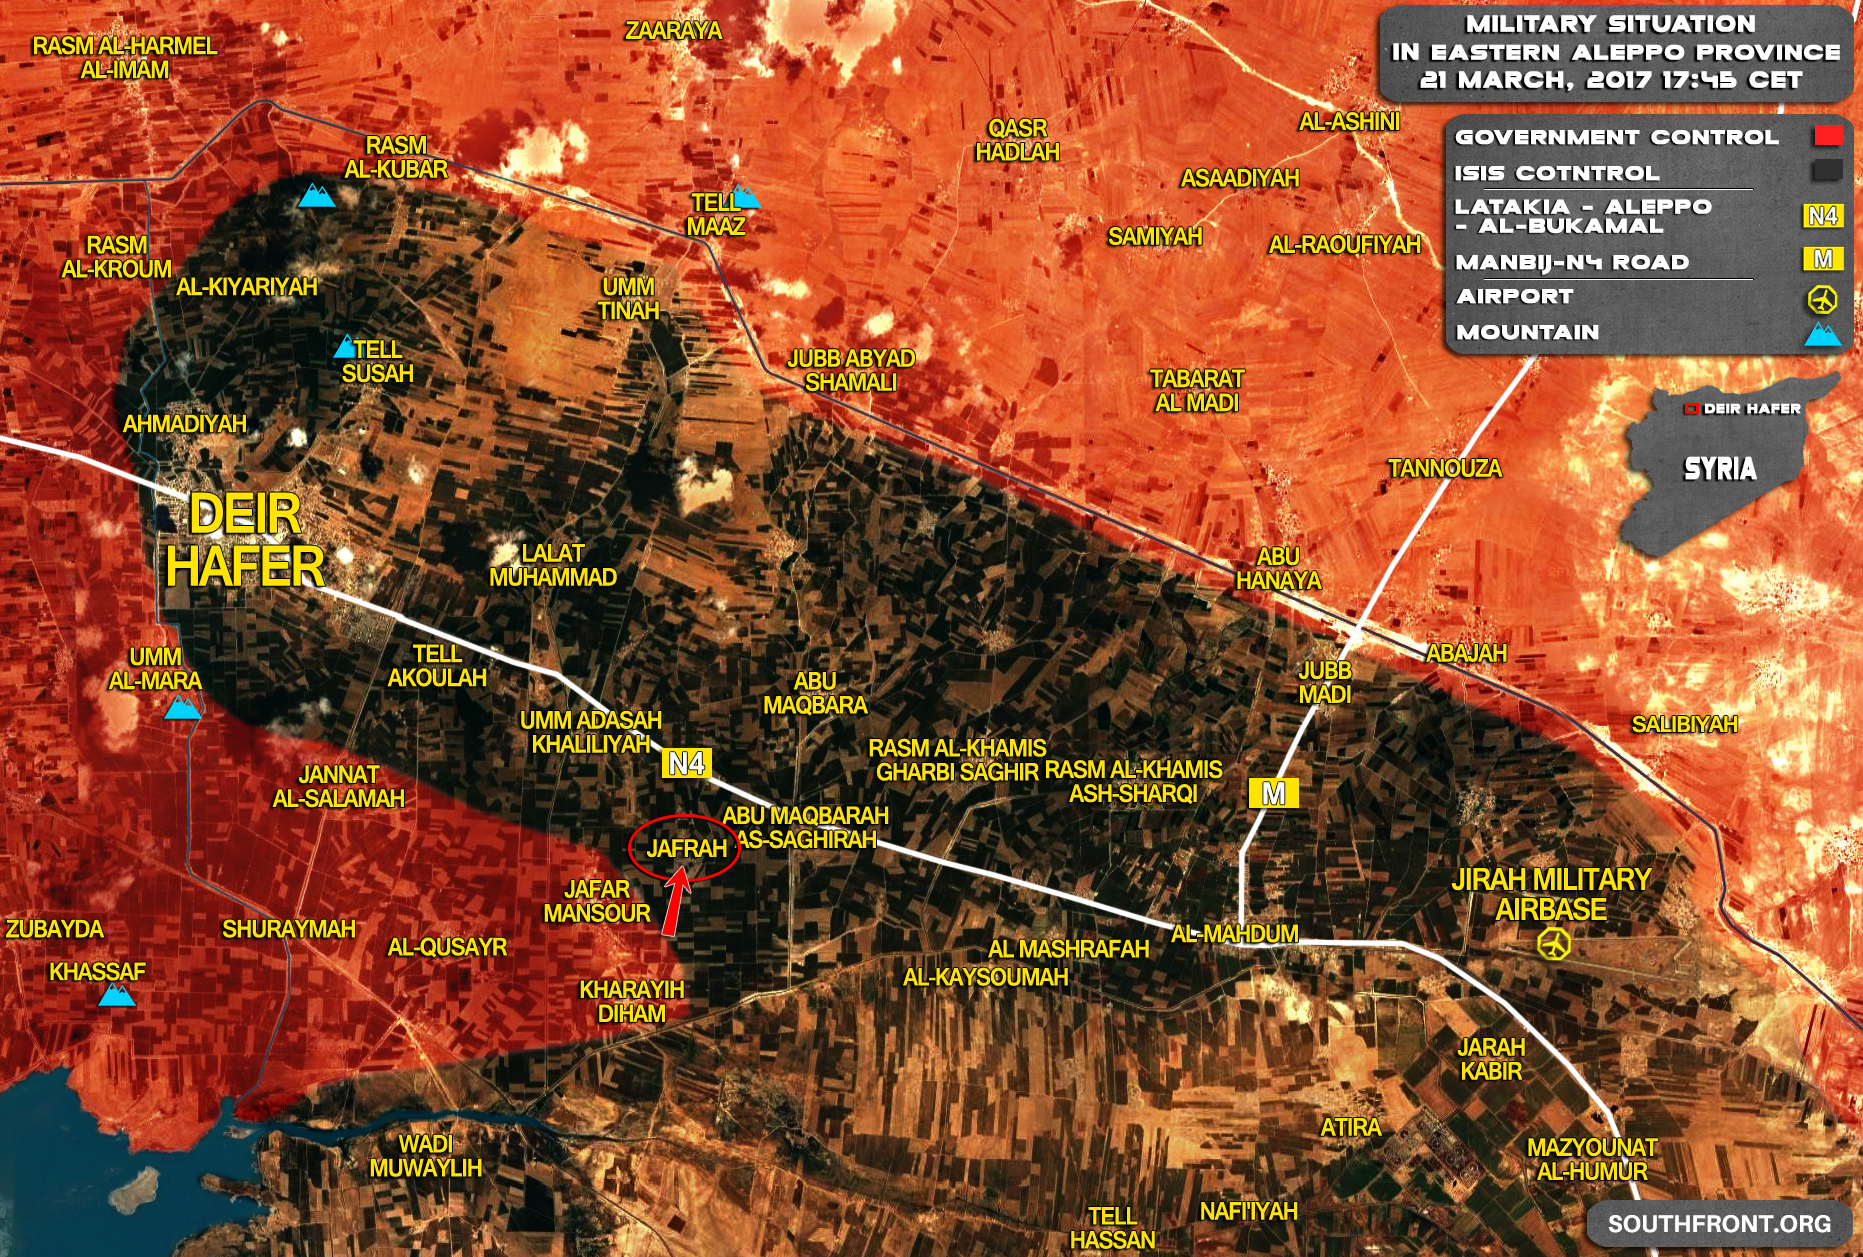 Government Forces Get Fire Control Of Highway West Of ISIS Stronghold Of Deir Hafer - Reports